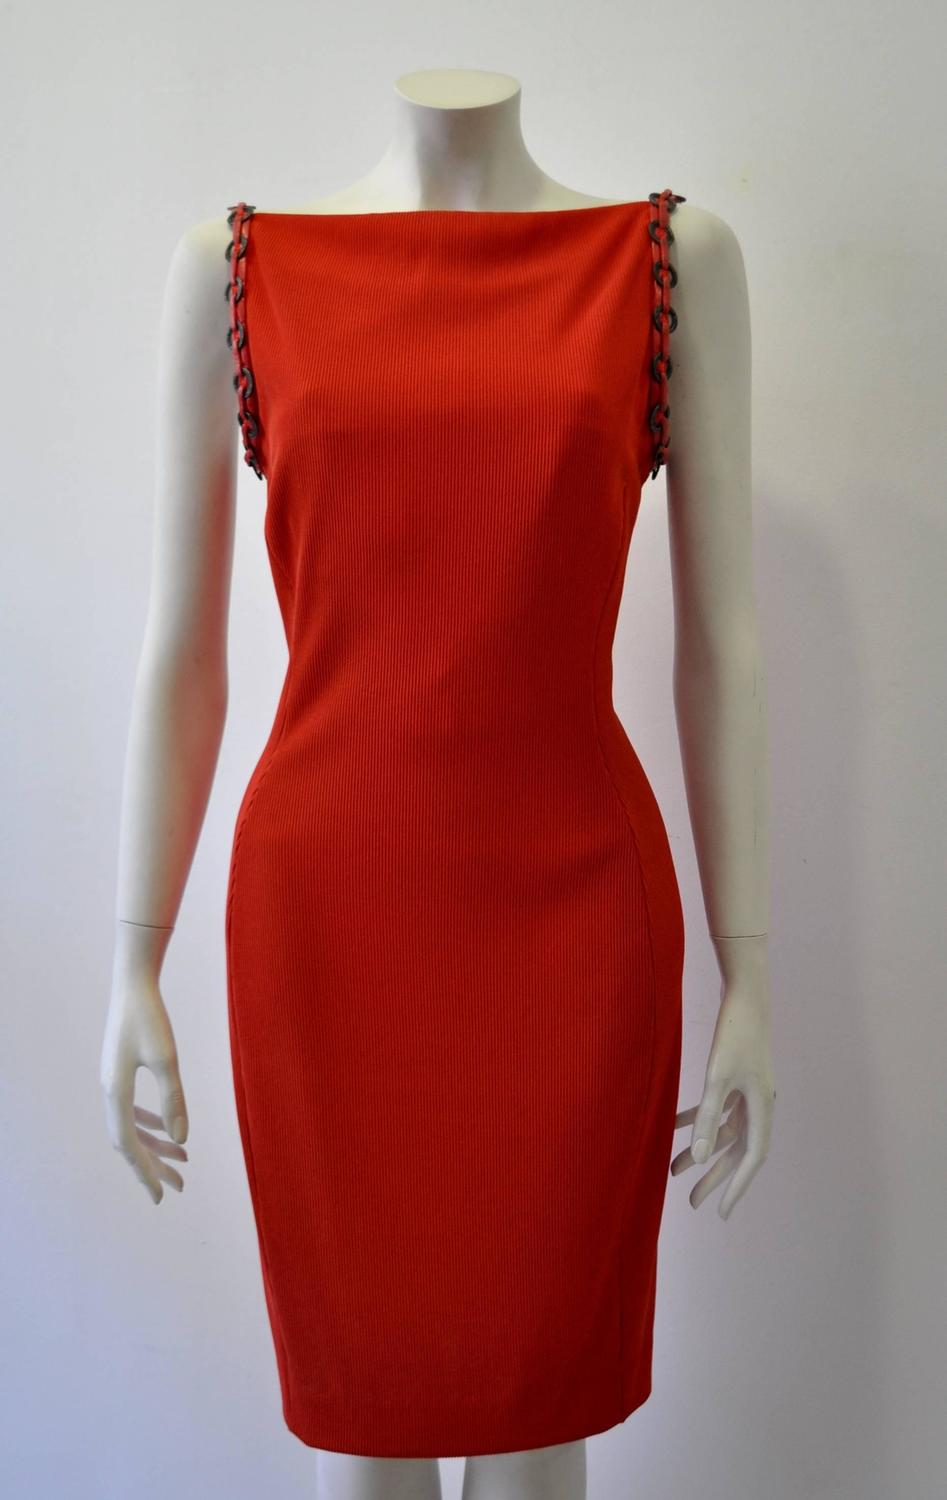 Iconic Gianni Versace Couture Red Siren Bodycon Dress For